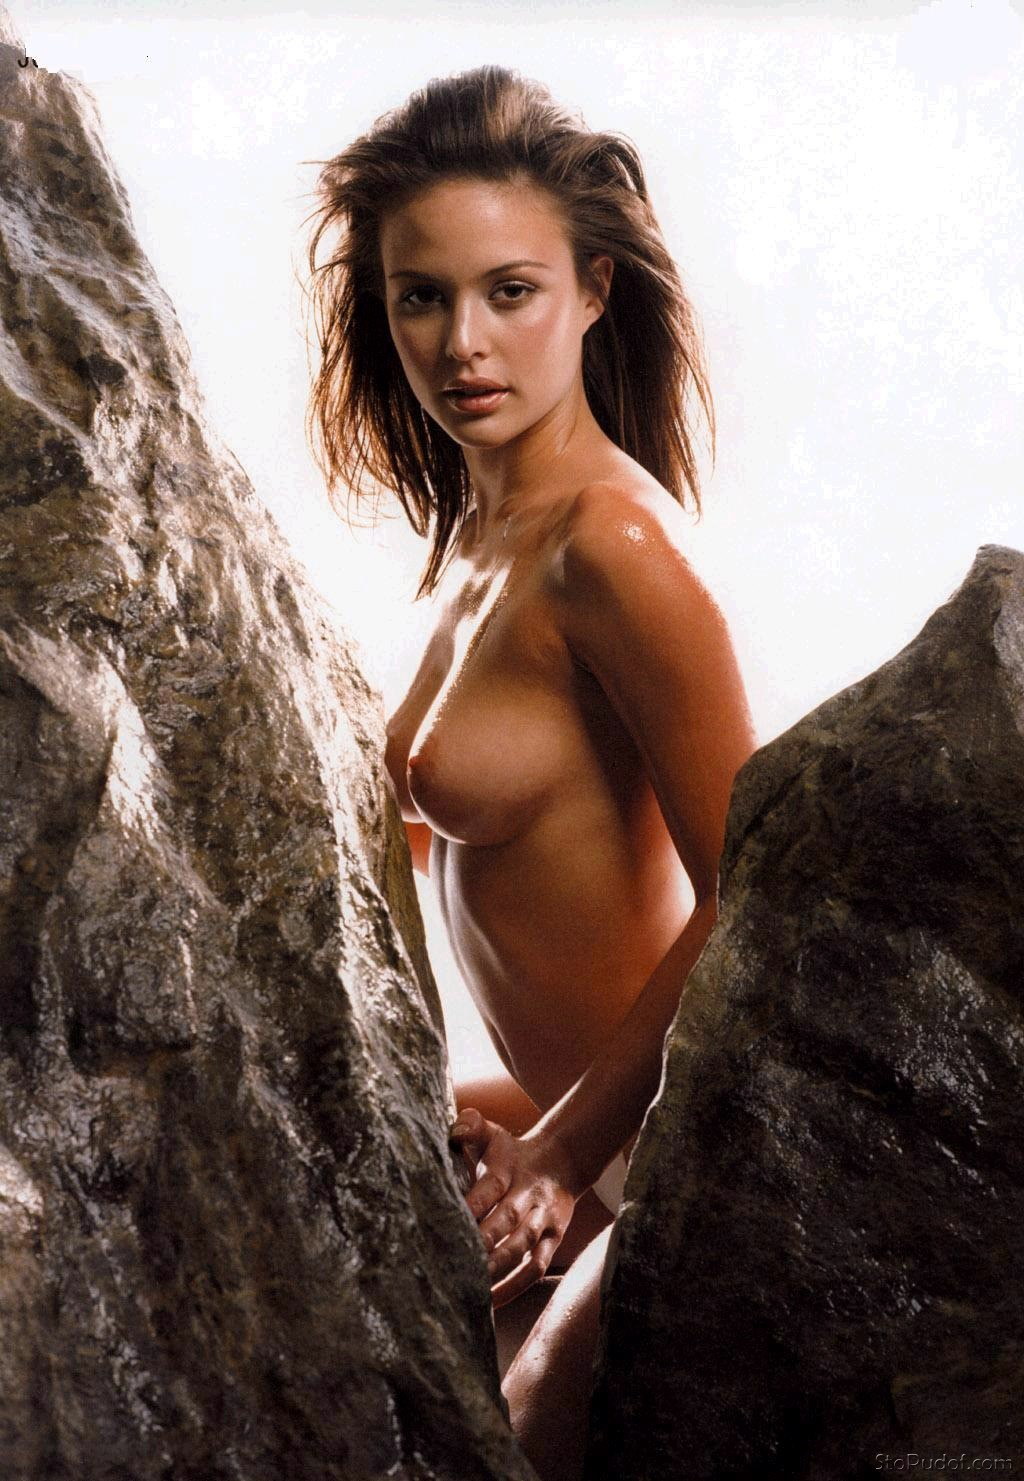 hacked naked pics of Josie Maran - UkPhotoSafari